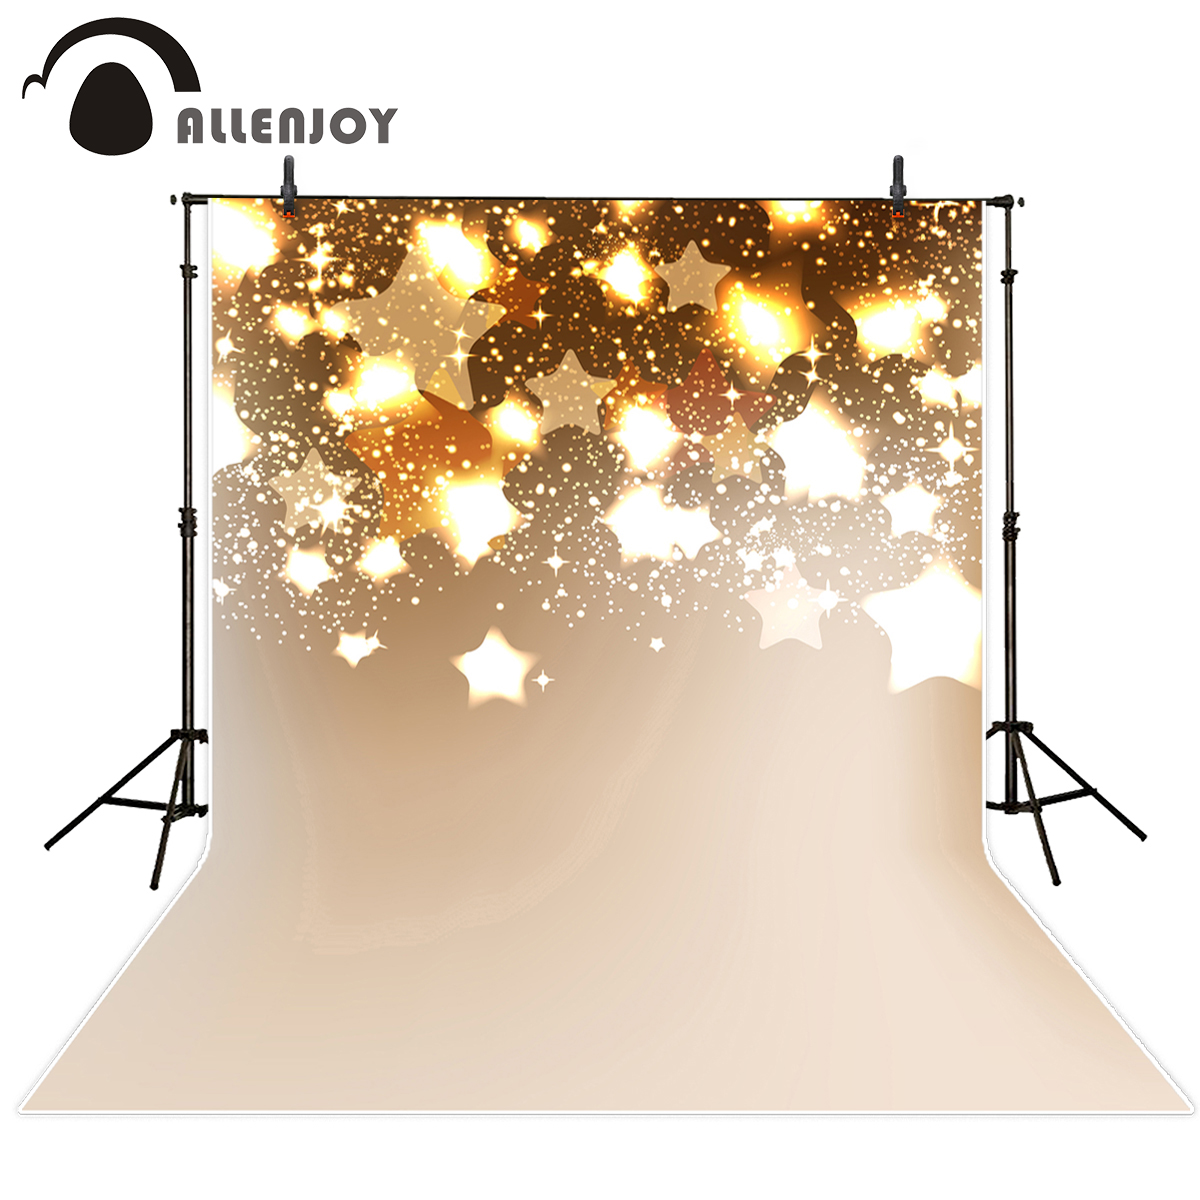 Allenjoy photography backdrops shiny golden star beautiful glitter backgrounds for photo studio photography background vinyl naresh kumar bainsla dhiraj singh and r s beniwal fusarium wilt of pigeonpea cajanus cajan l millsp a molecular study